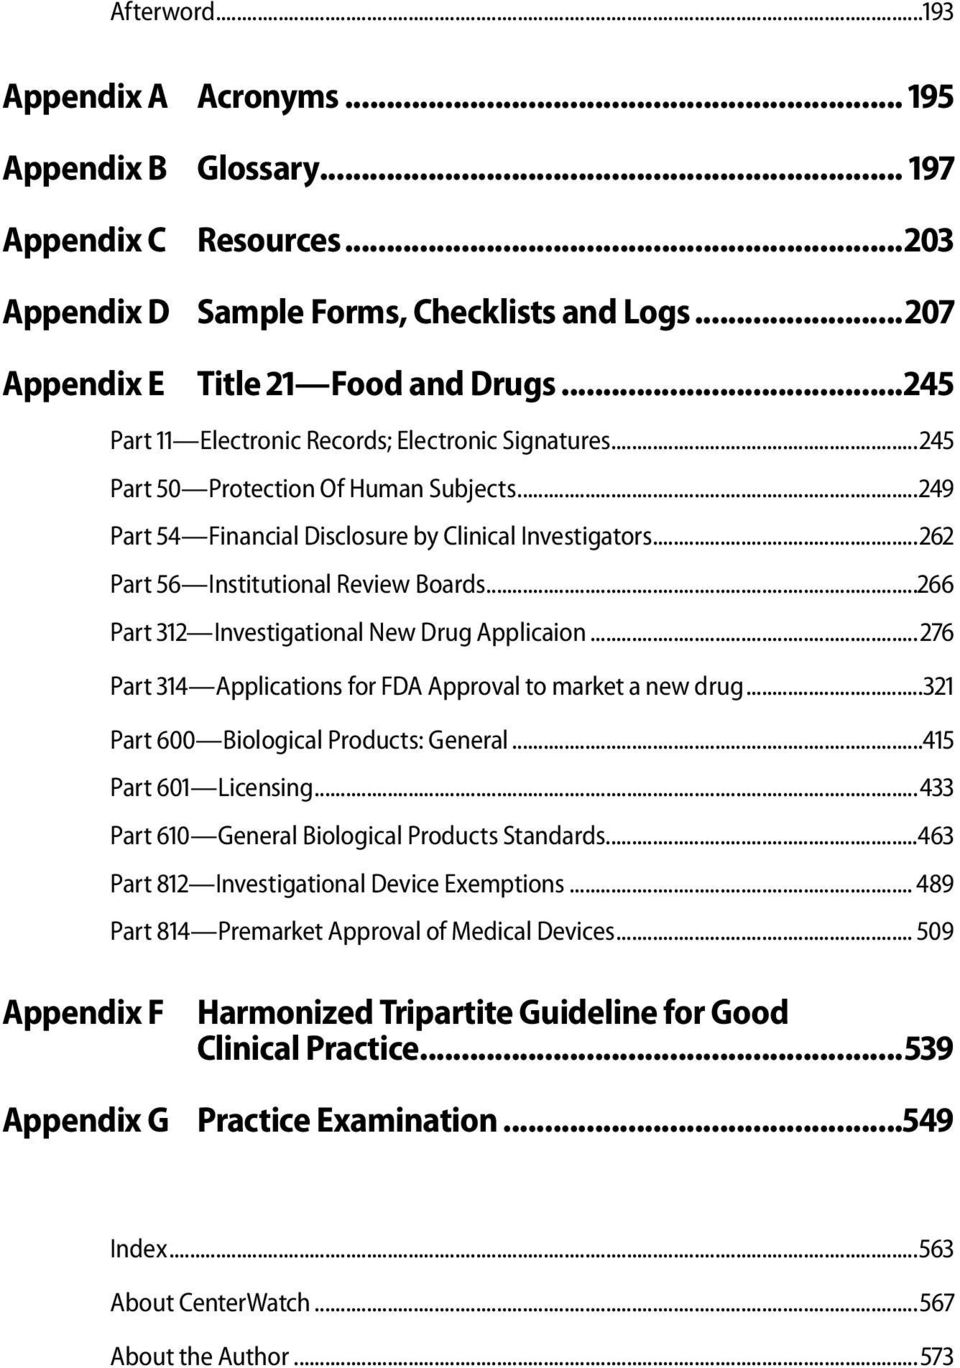 ..266 Part 312 Investigational New Drug Applicaion... 276 Part 314 Applications for FDA Approval to market a new drug...321 Part 600 Biological Products: General...415 Part 601 Licensing.